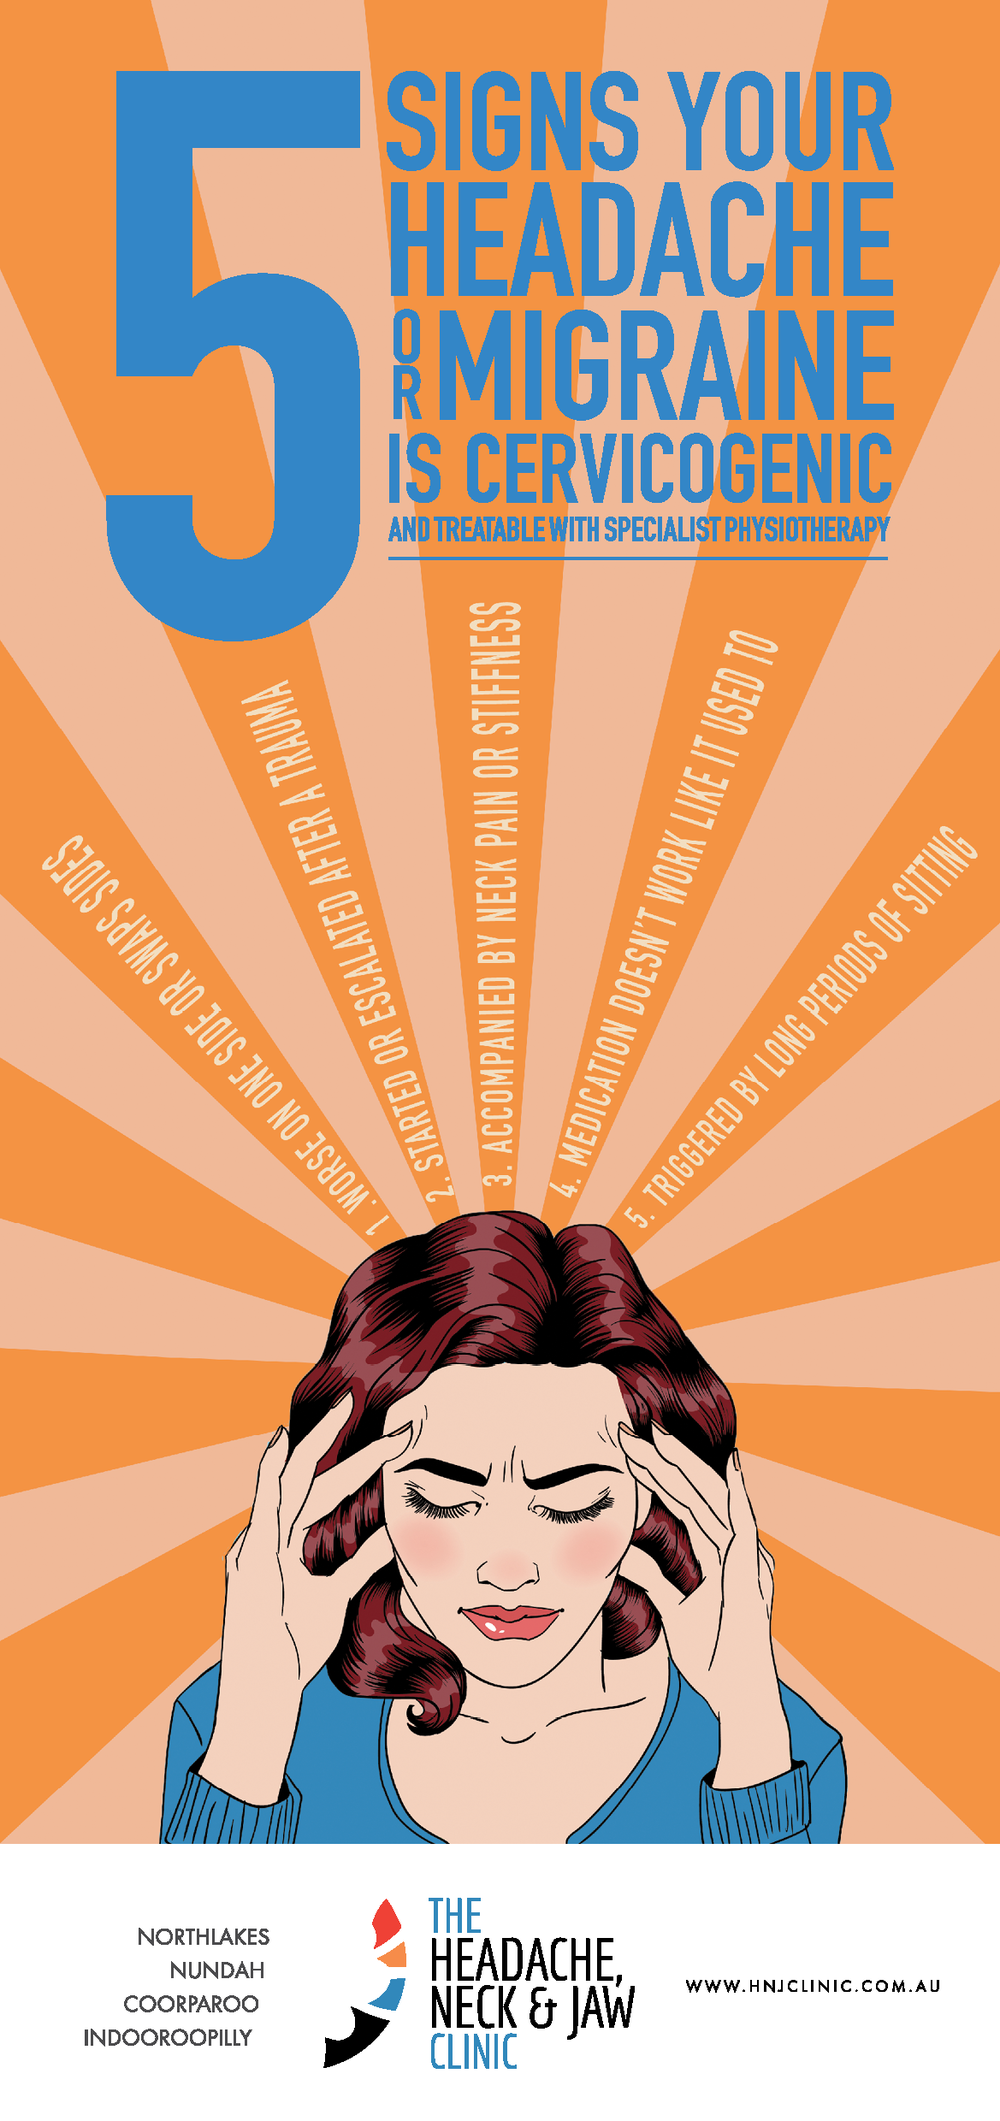 HNJ 5 Signs Your Headache Migraine is Cervicogenic.png